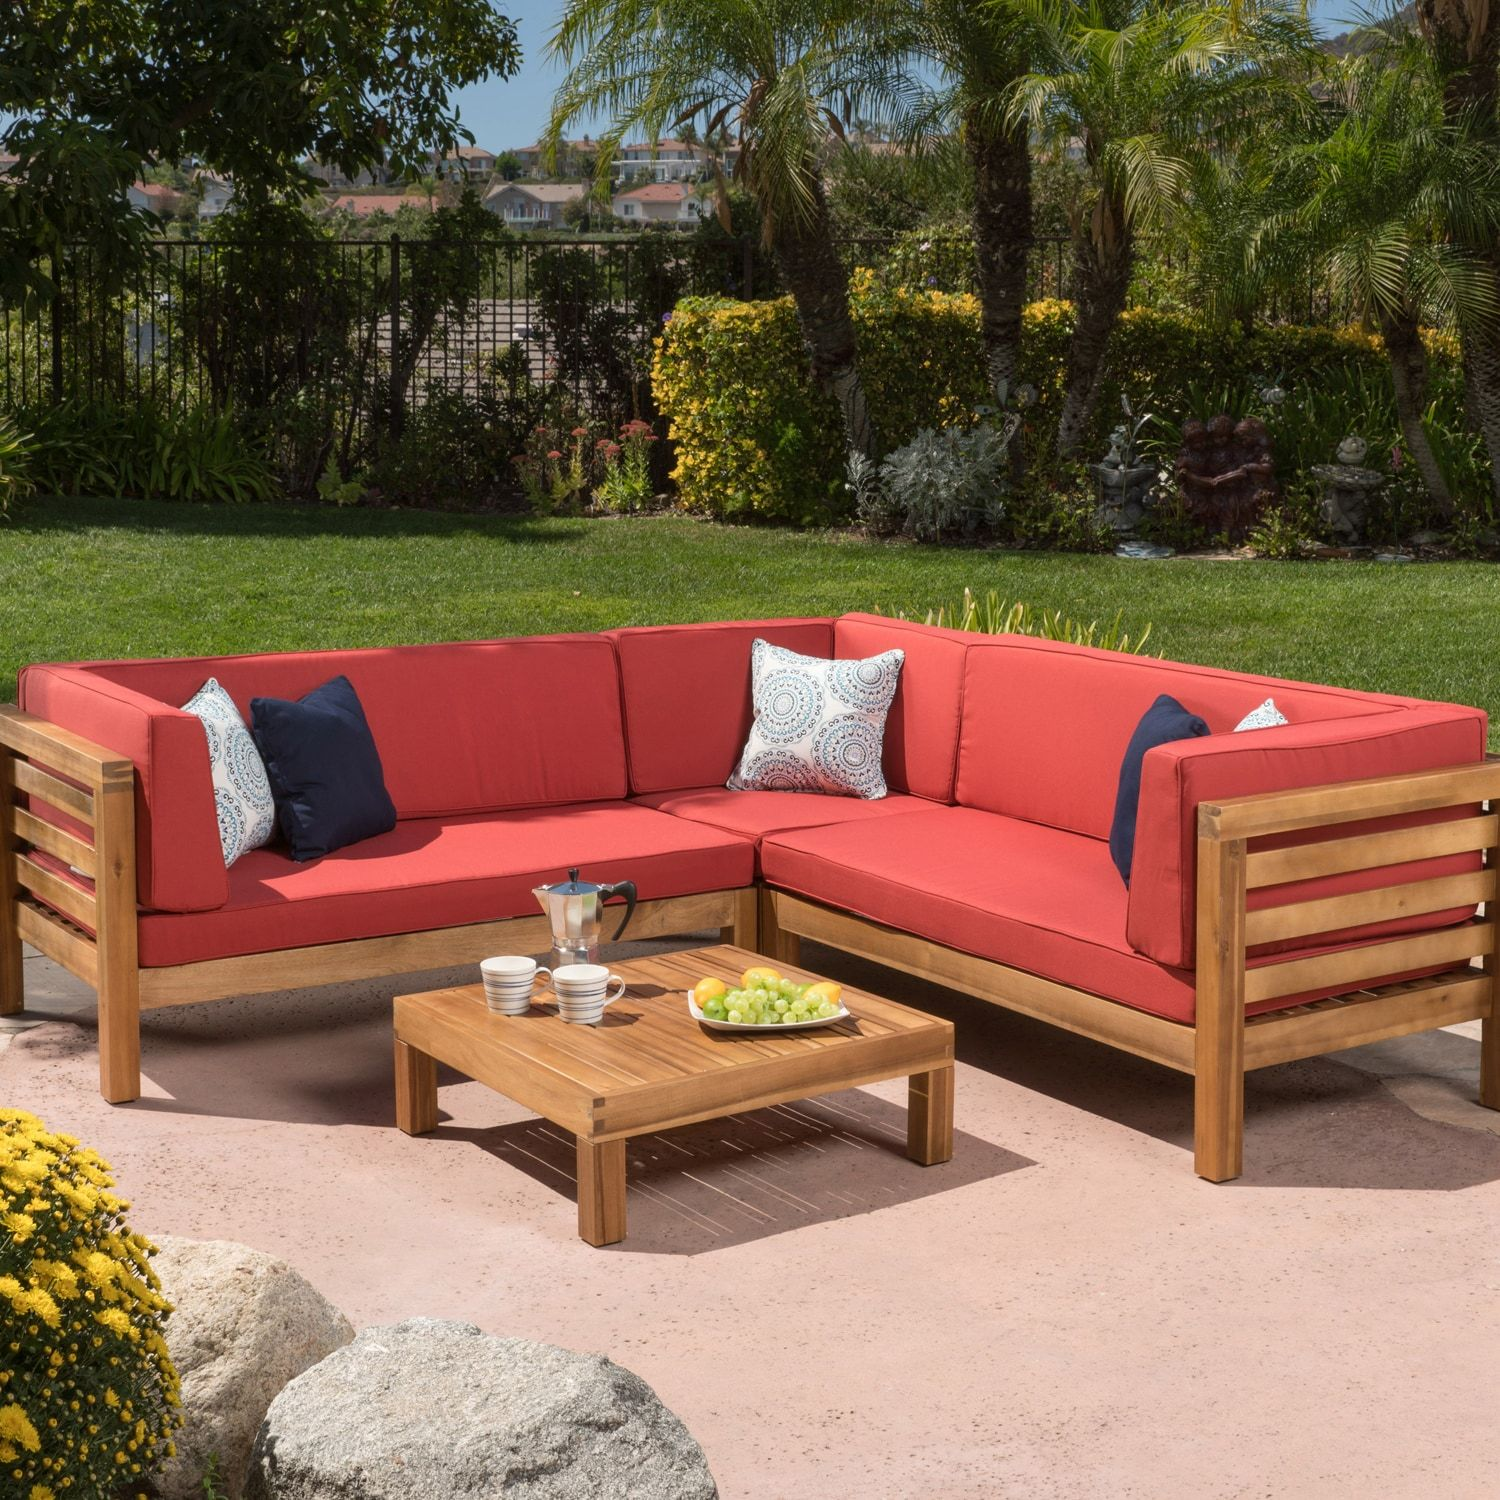 Oana Red 4 Piece Outdoor Wooden Sectional Set